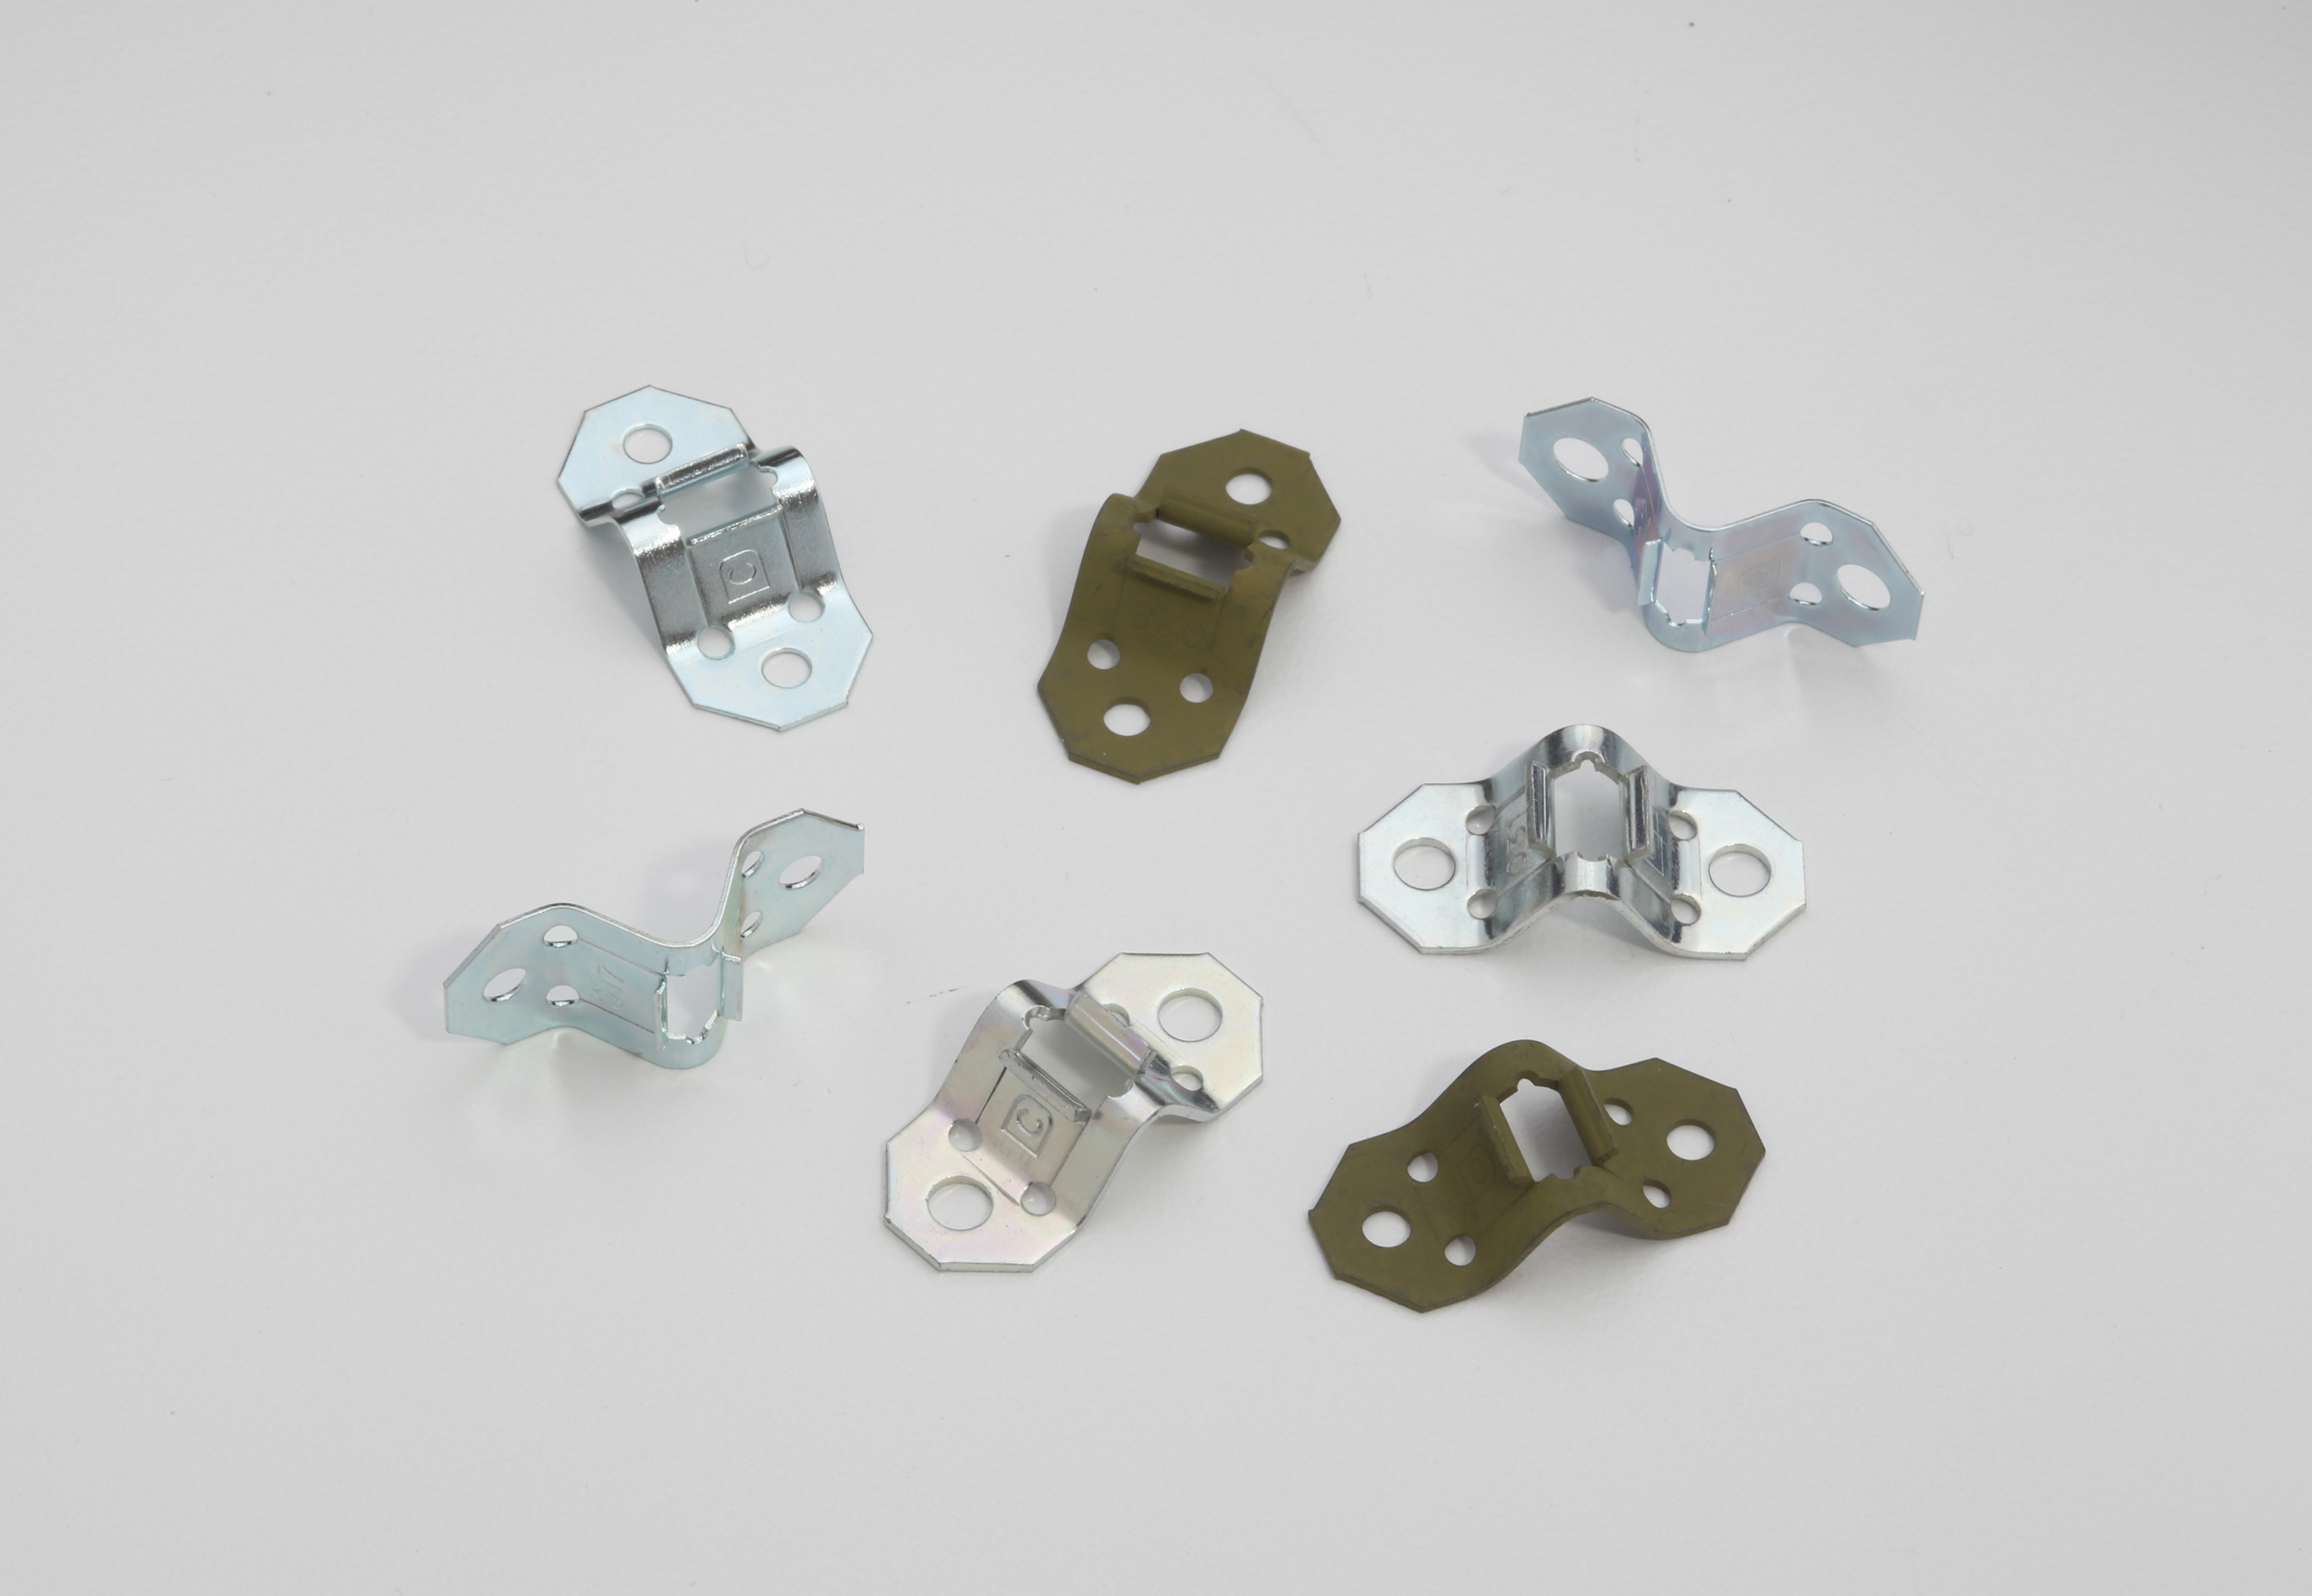 Ball stud retainers